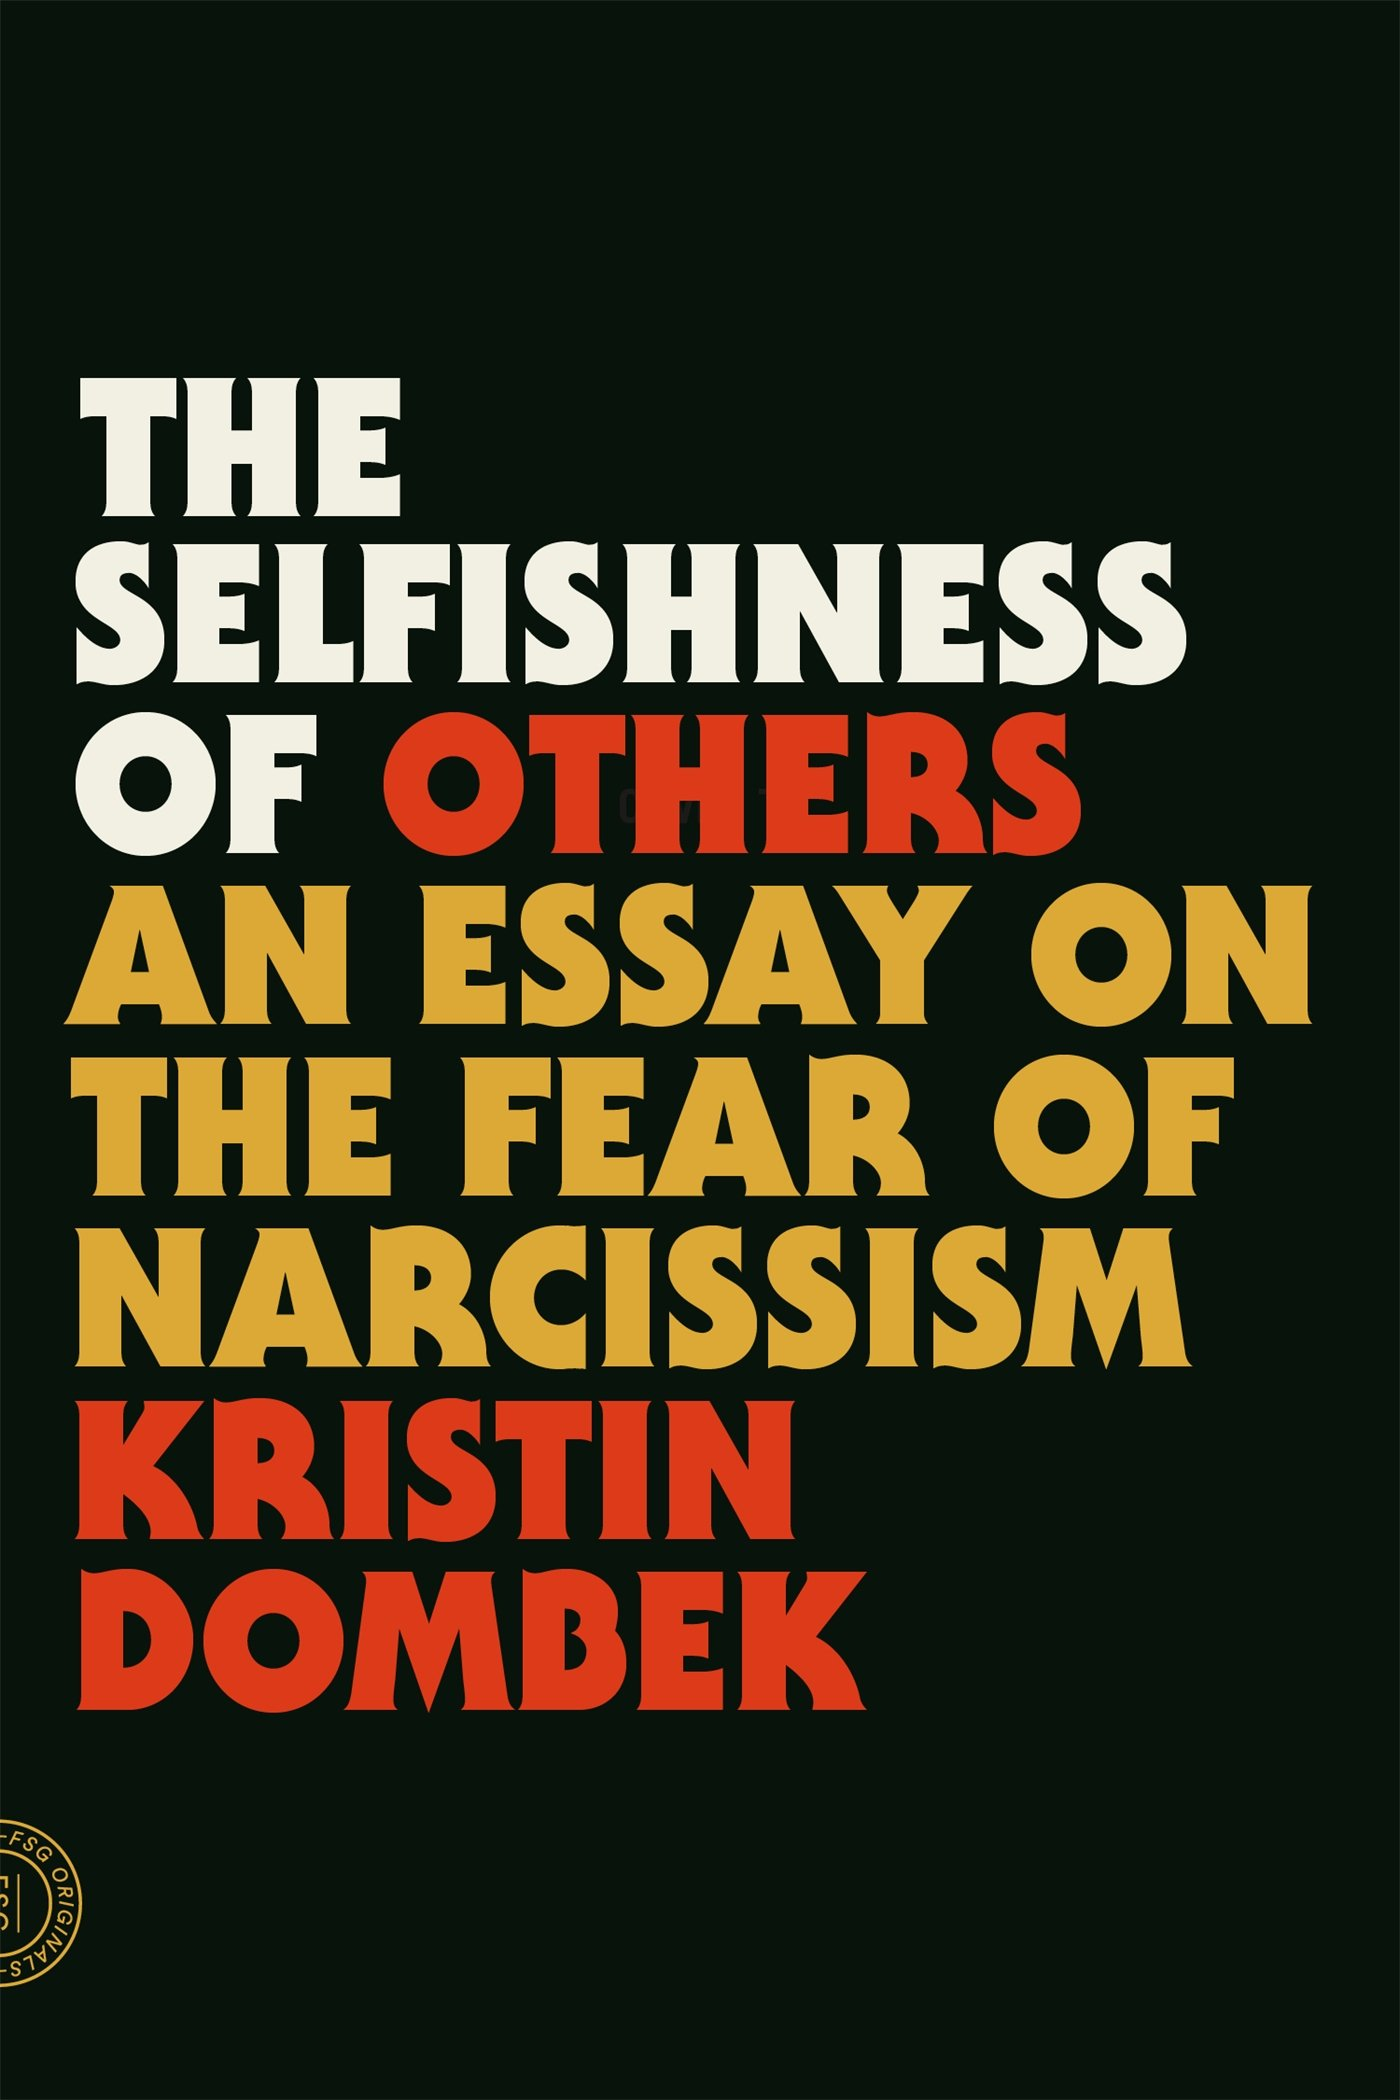 The Selfishness of Others: An Essay on the Fear of